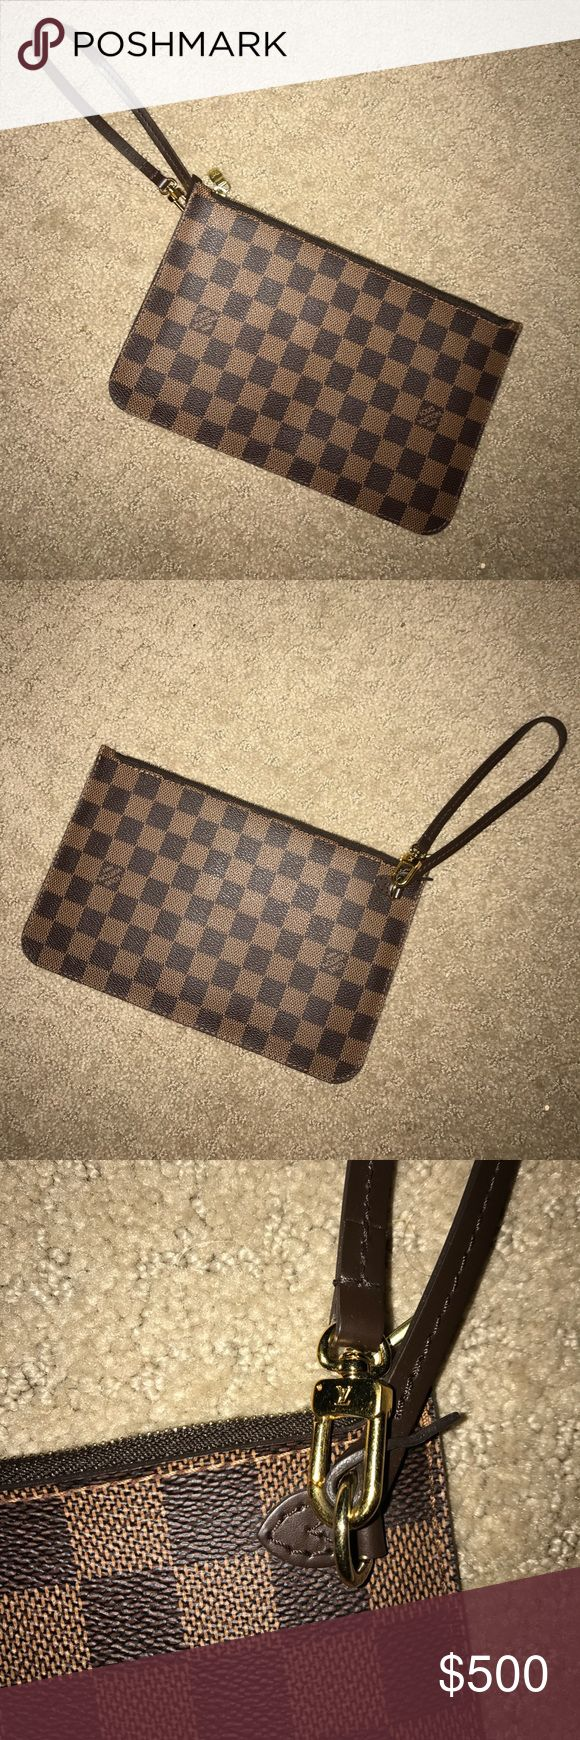 Louis Vuitton clutch Came inside of my Neverfull Damier Bag. Purchased from original Louis Vuitton store in Paris about 3 years ago. I took this out of my bag in the beginning, and only used this one time! It is in absolute perfect condition! Louis Vuitton Bags Clutches & Wristlets